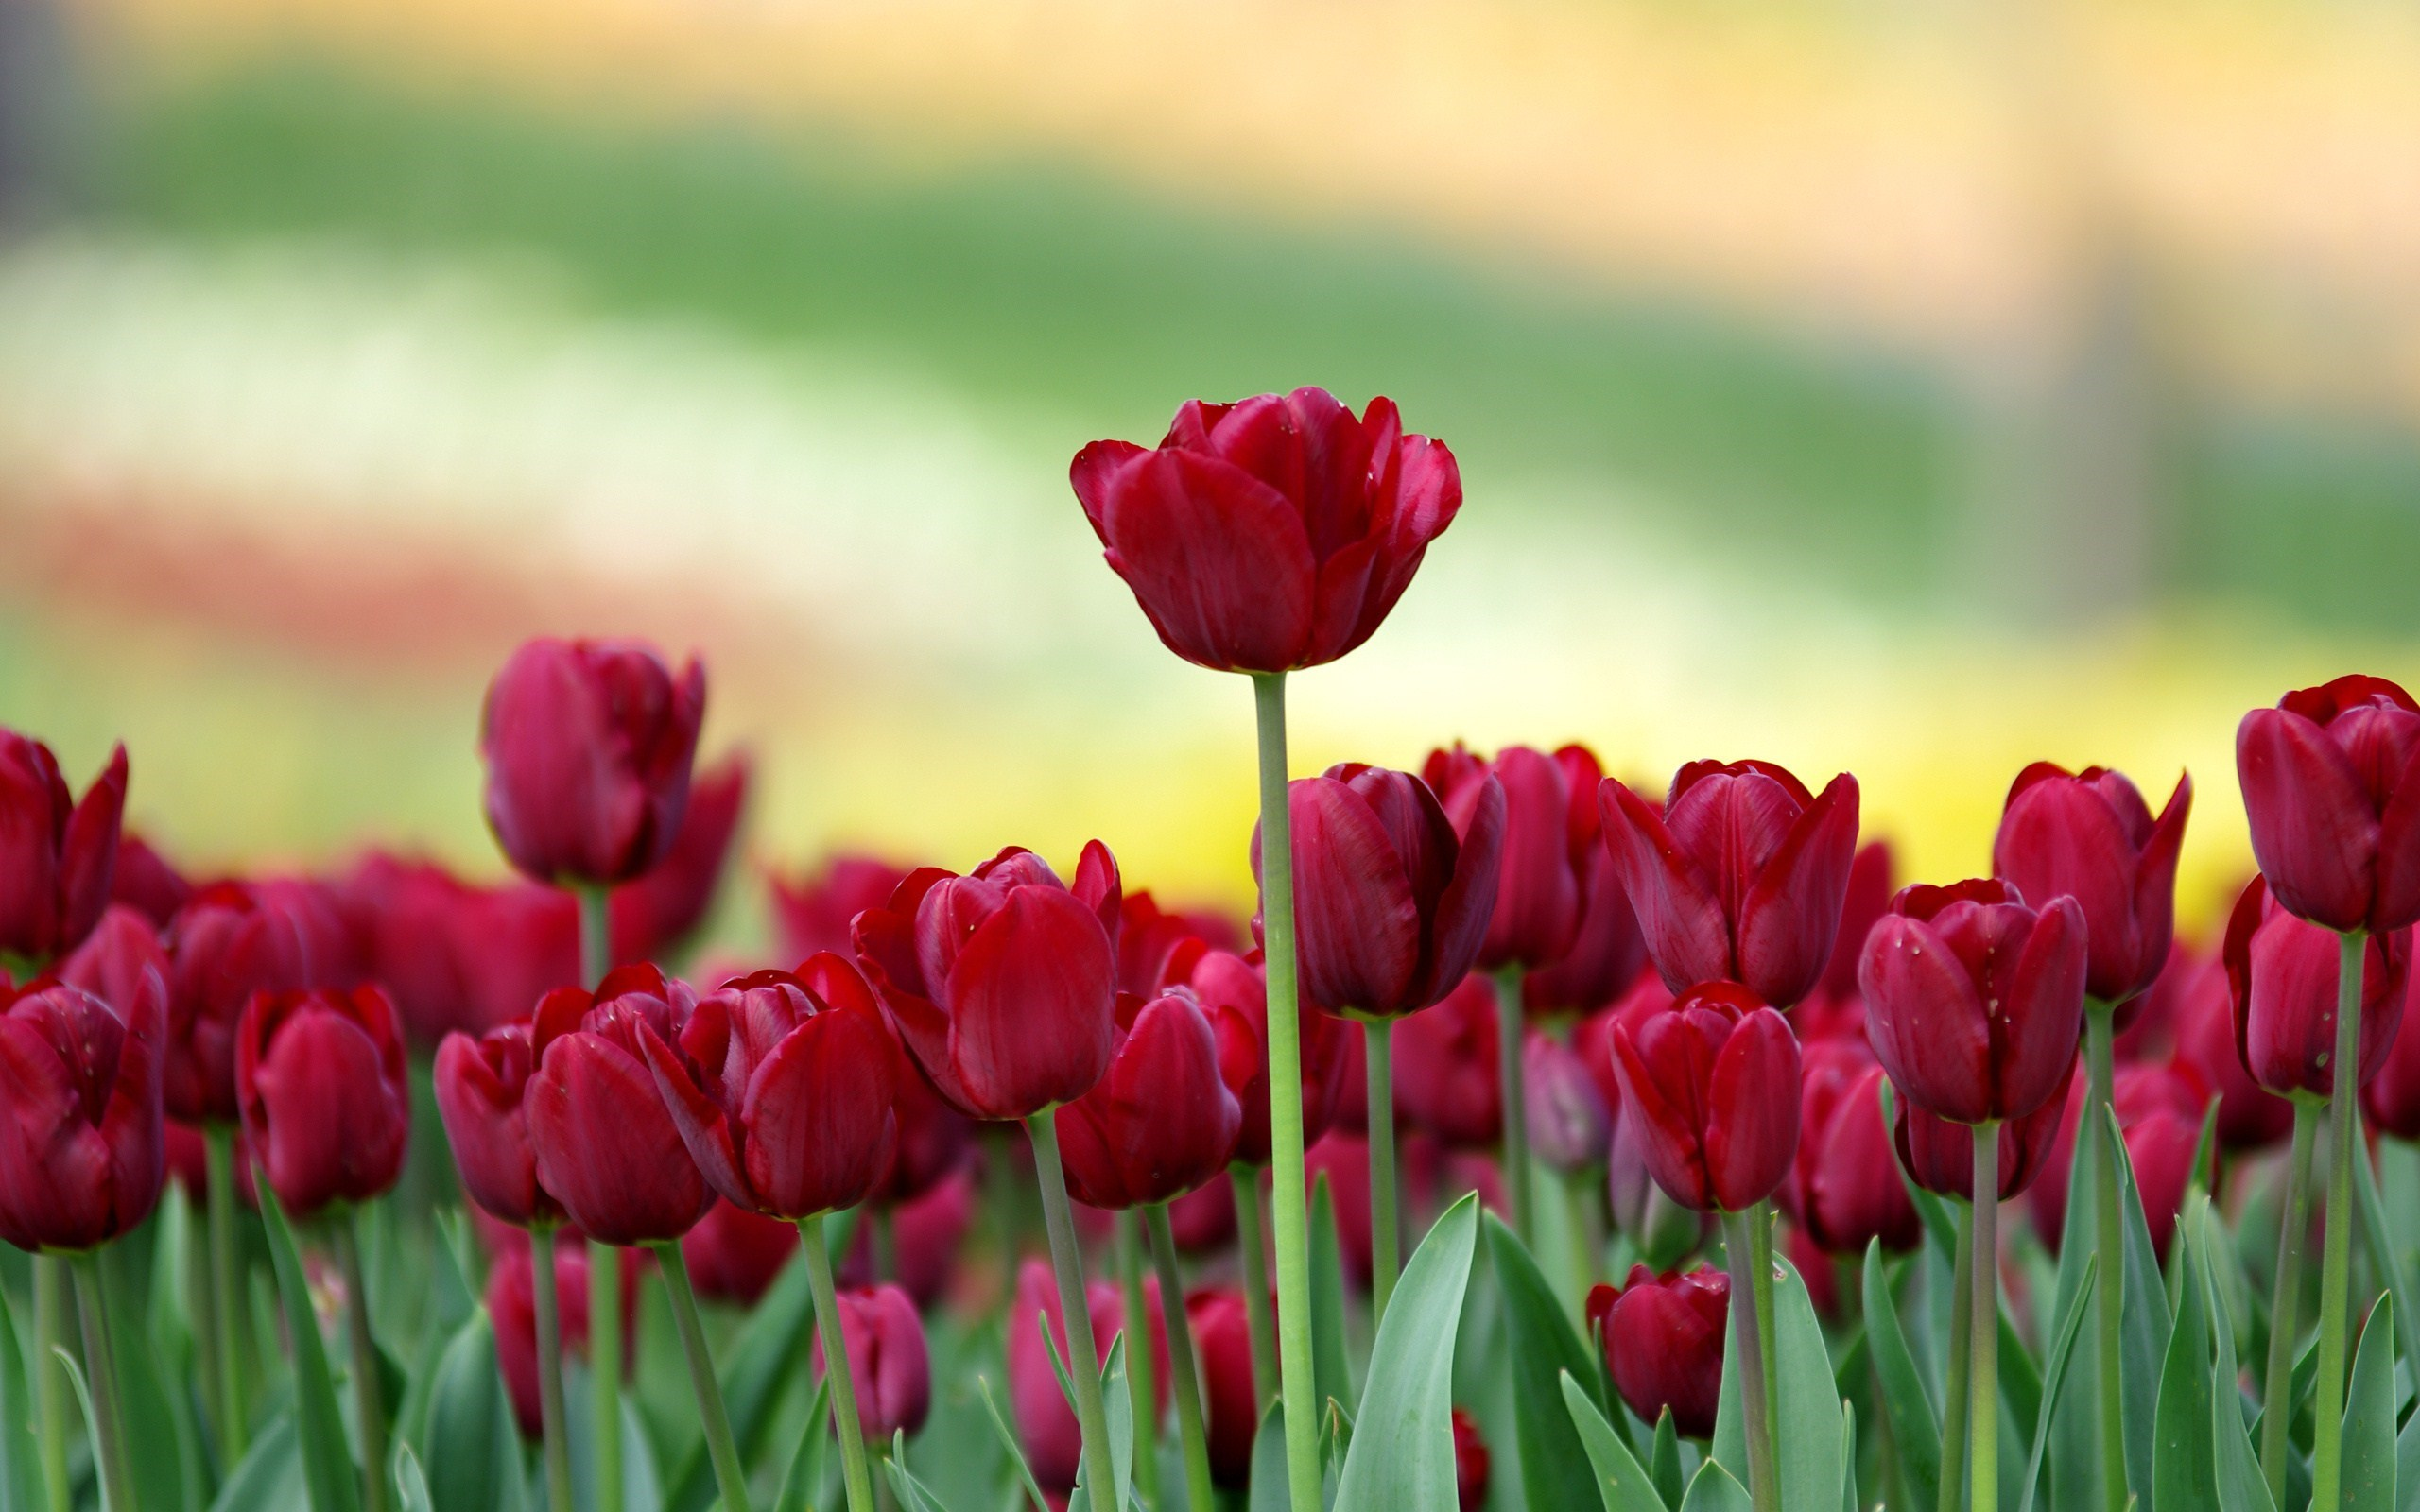 Red Tulips Field Nature Hd Wallpaper 2560x1600px